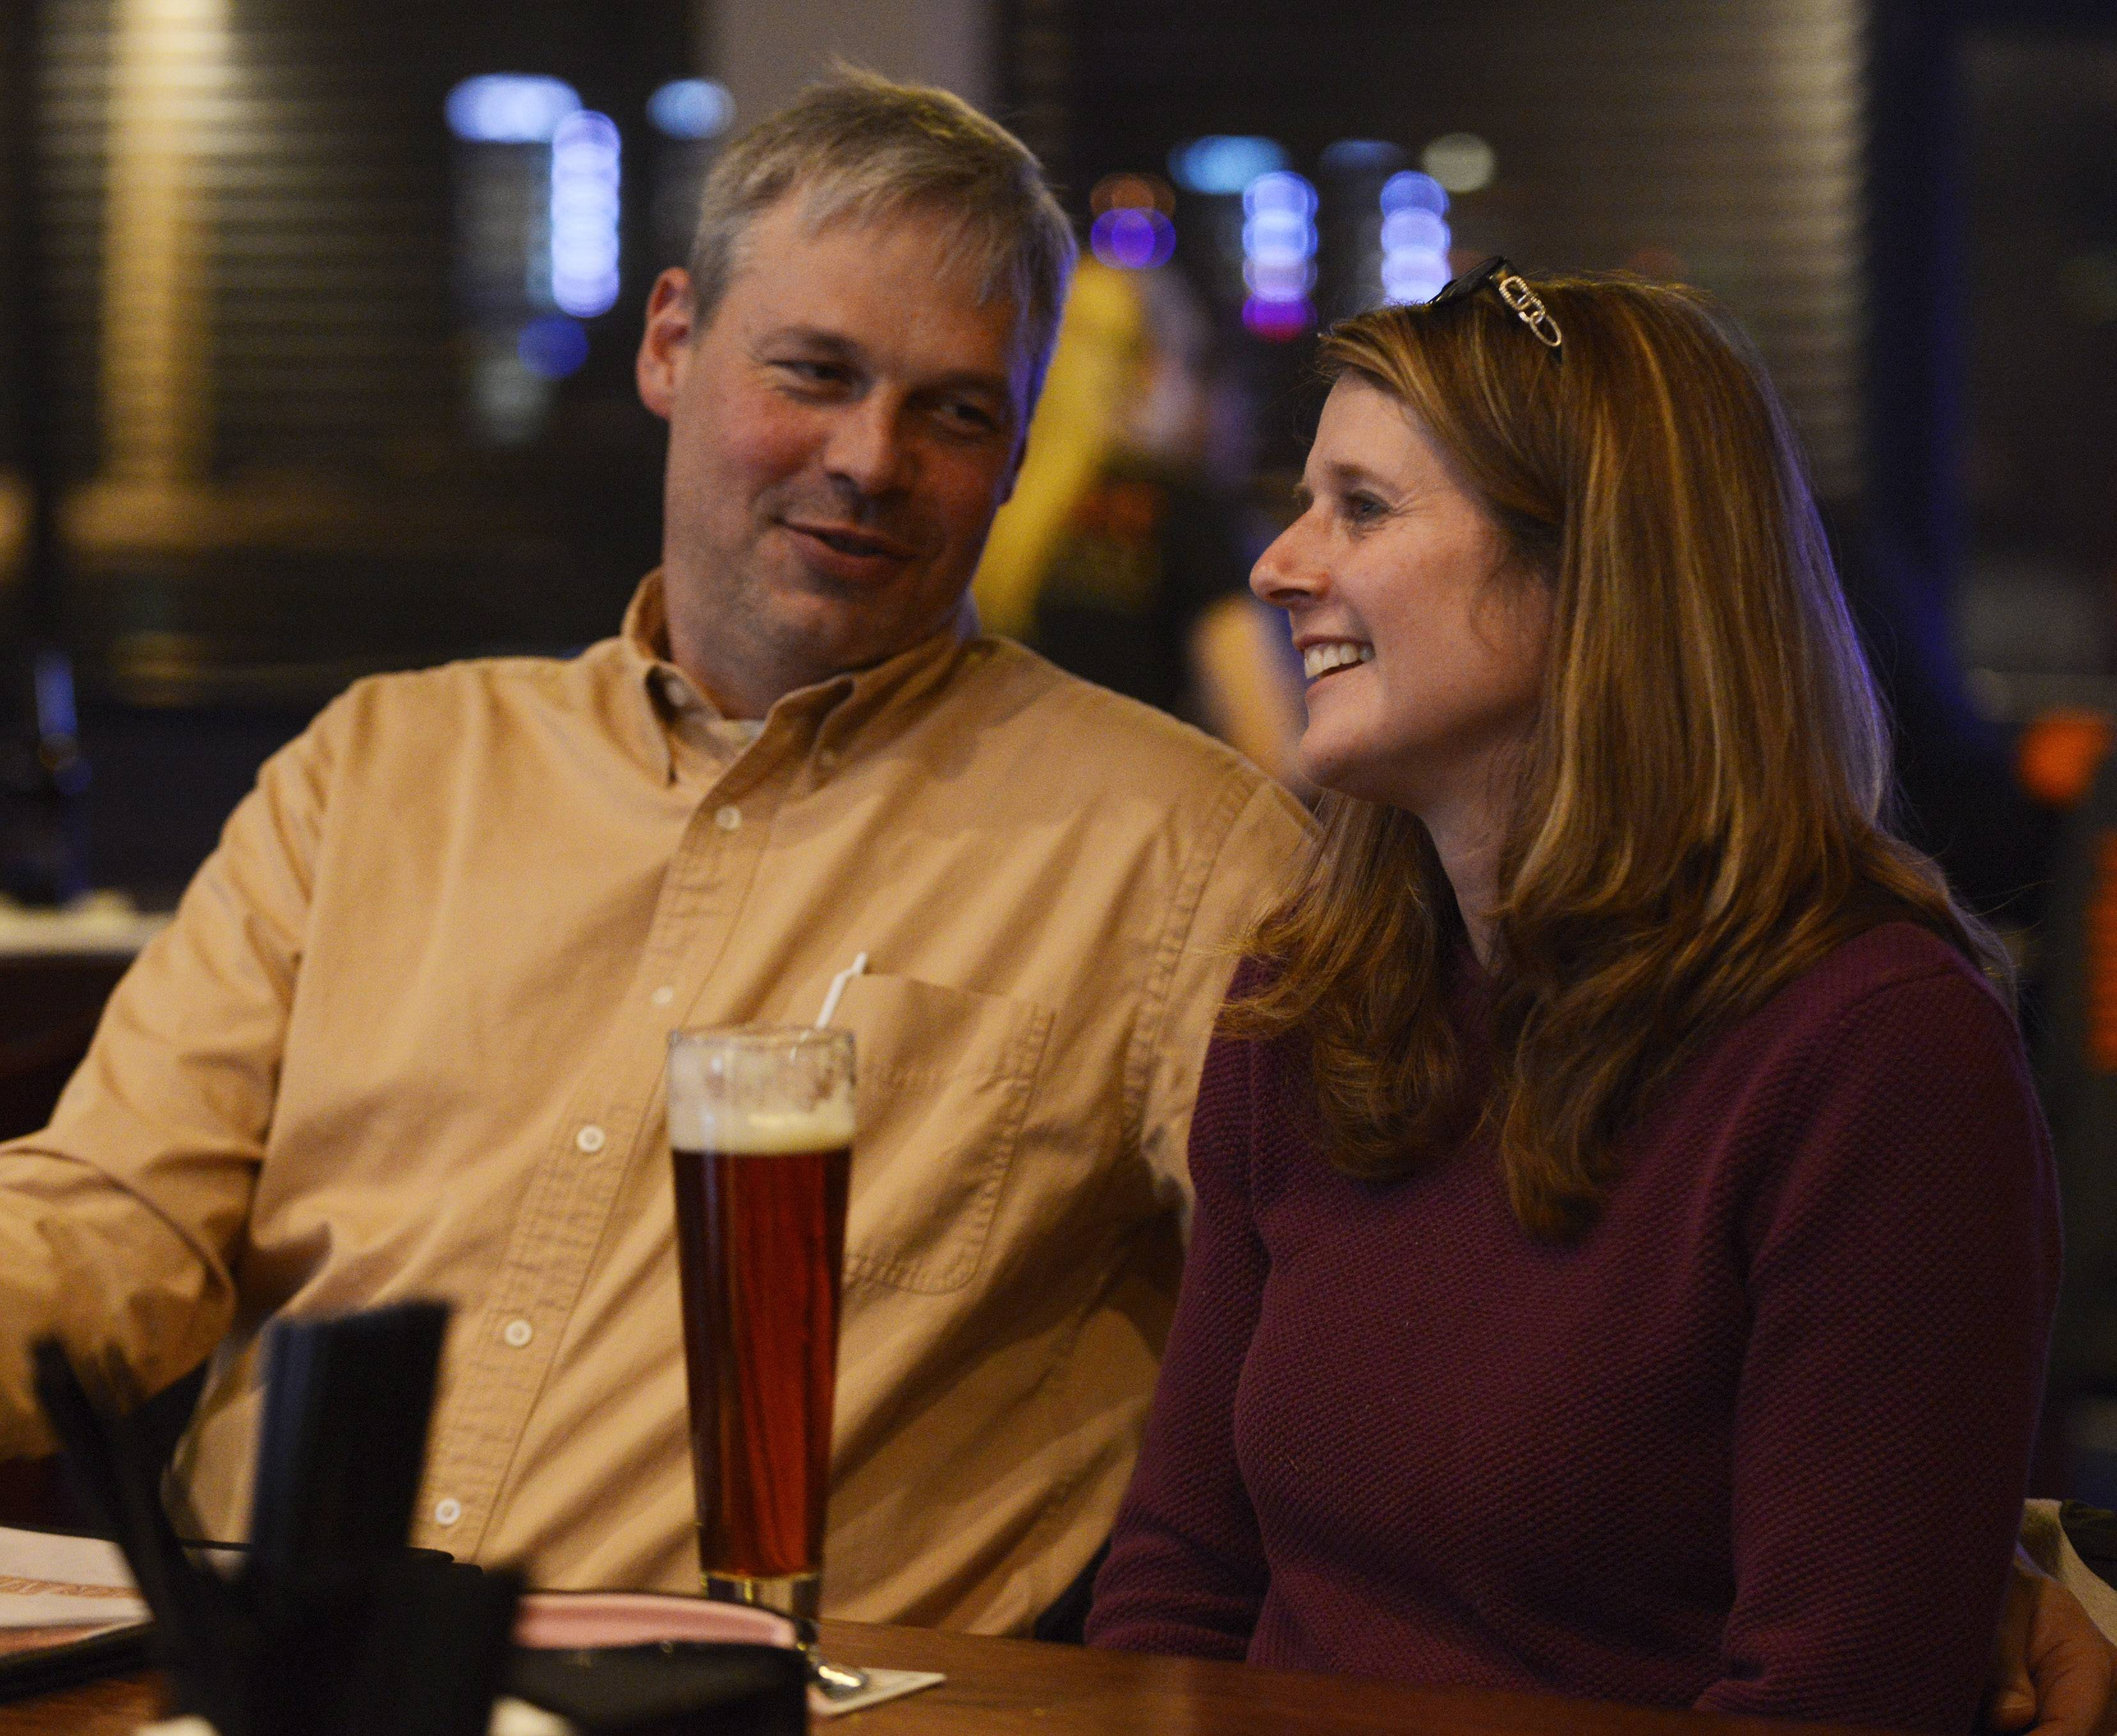 Bill and Karen Niemerg of Streamwood have drinks at Fireside Ale House in Streamwood.